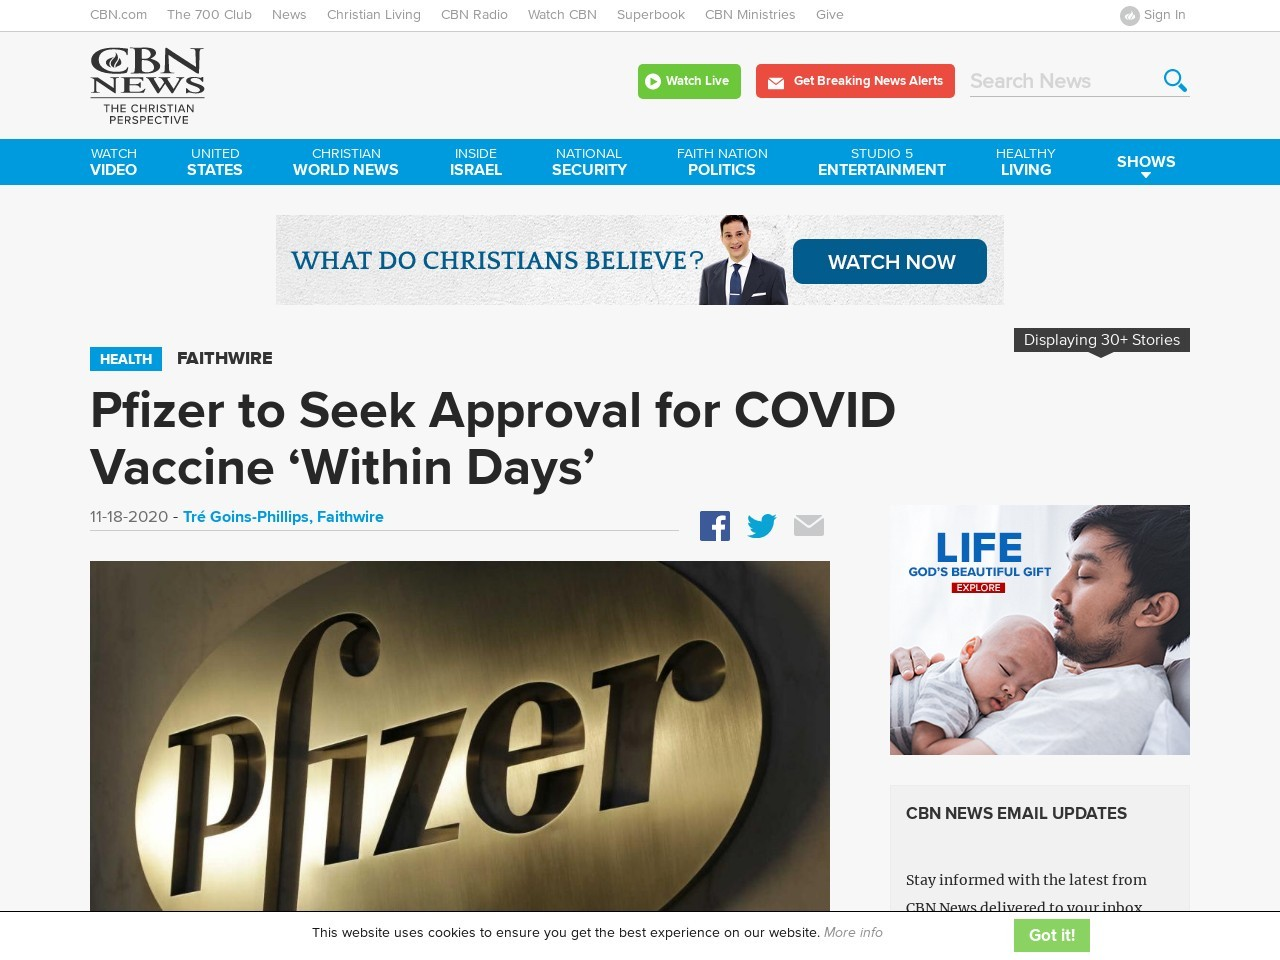 Pfizer to Seek Approval for COVID Vaccine 'Within Days'